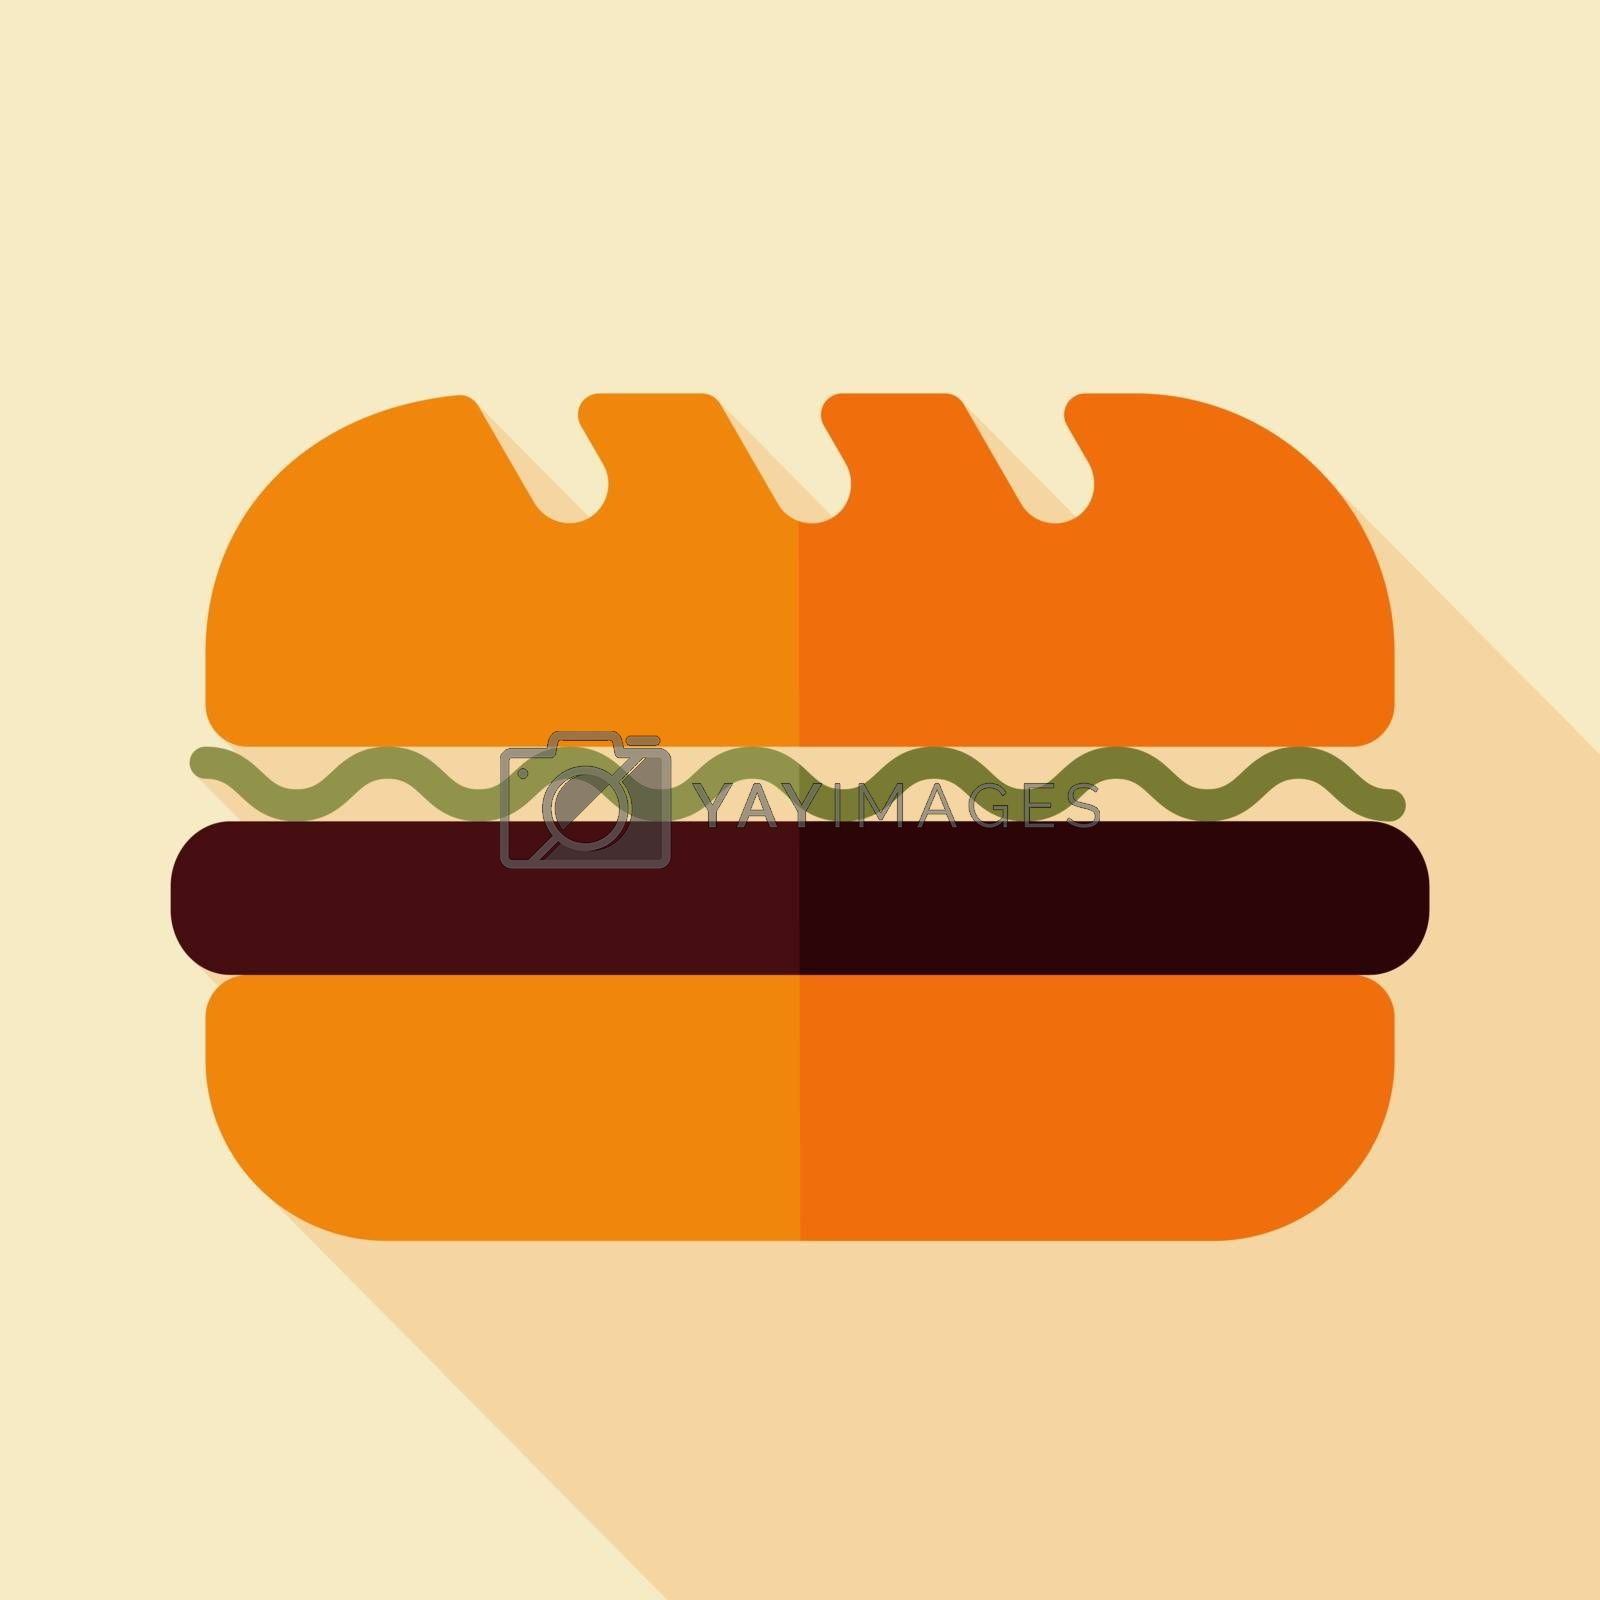 Subway Sandwich vector icon. Fast food sign. Graph symbol for cooking web site and apps design, logo, app, UI